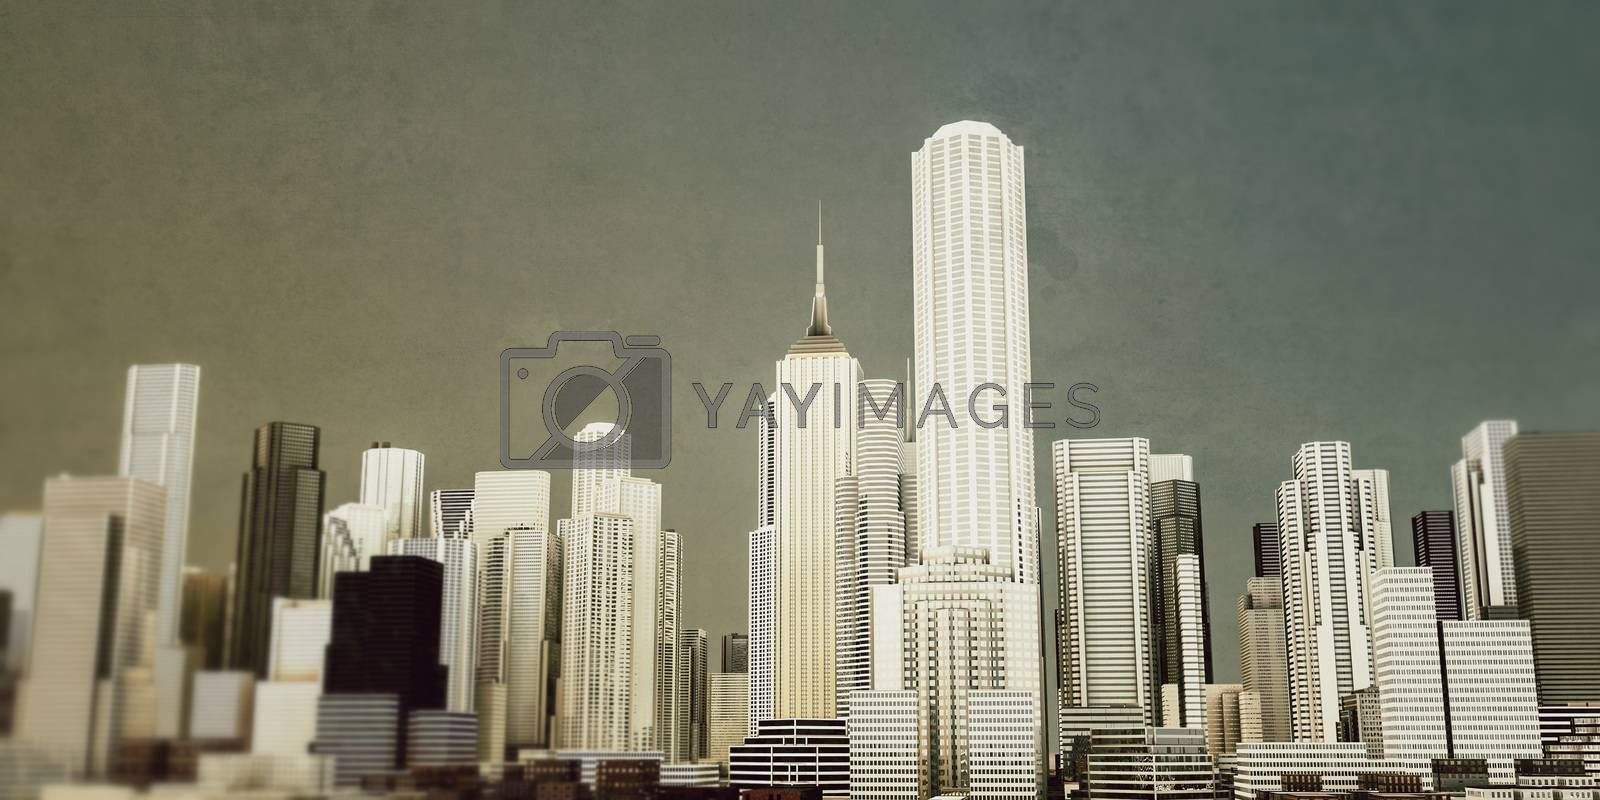 3d illustration of the downtown district with high skyscrapers